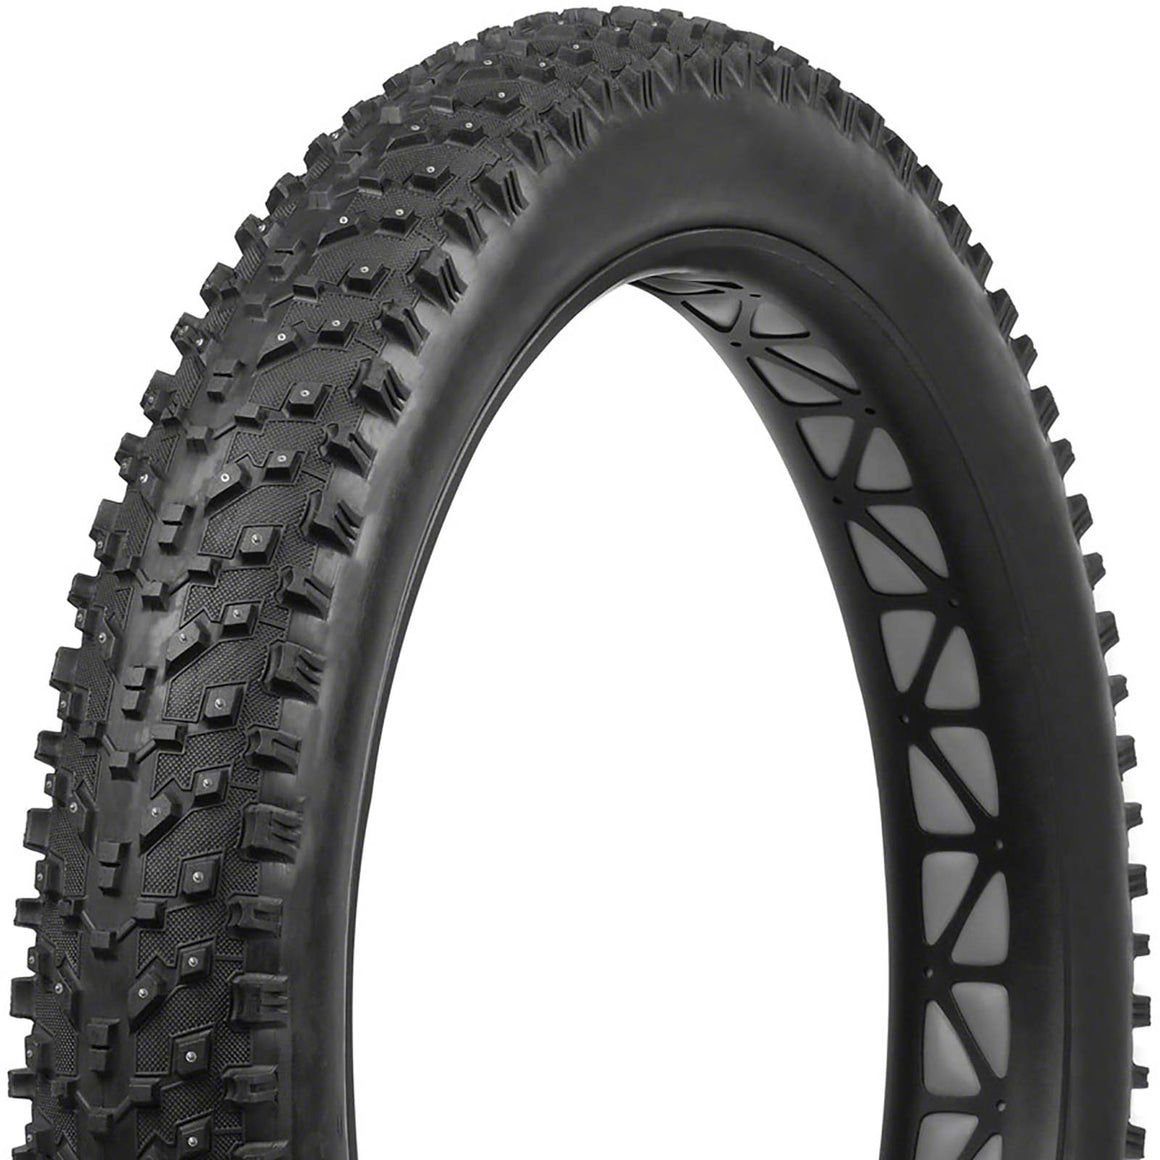 Vee Tire Snow Avalanche Tire - 26 x 4.8, Tubeless, Folding, Black, 120tpi, Studded, Silica Compound